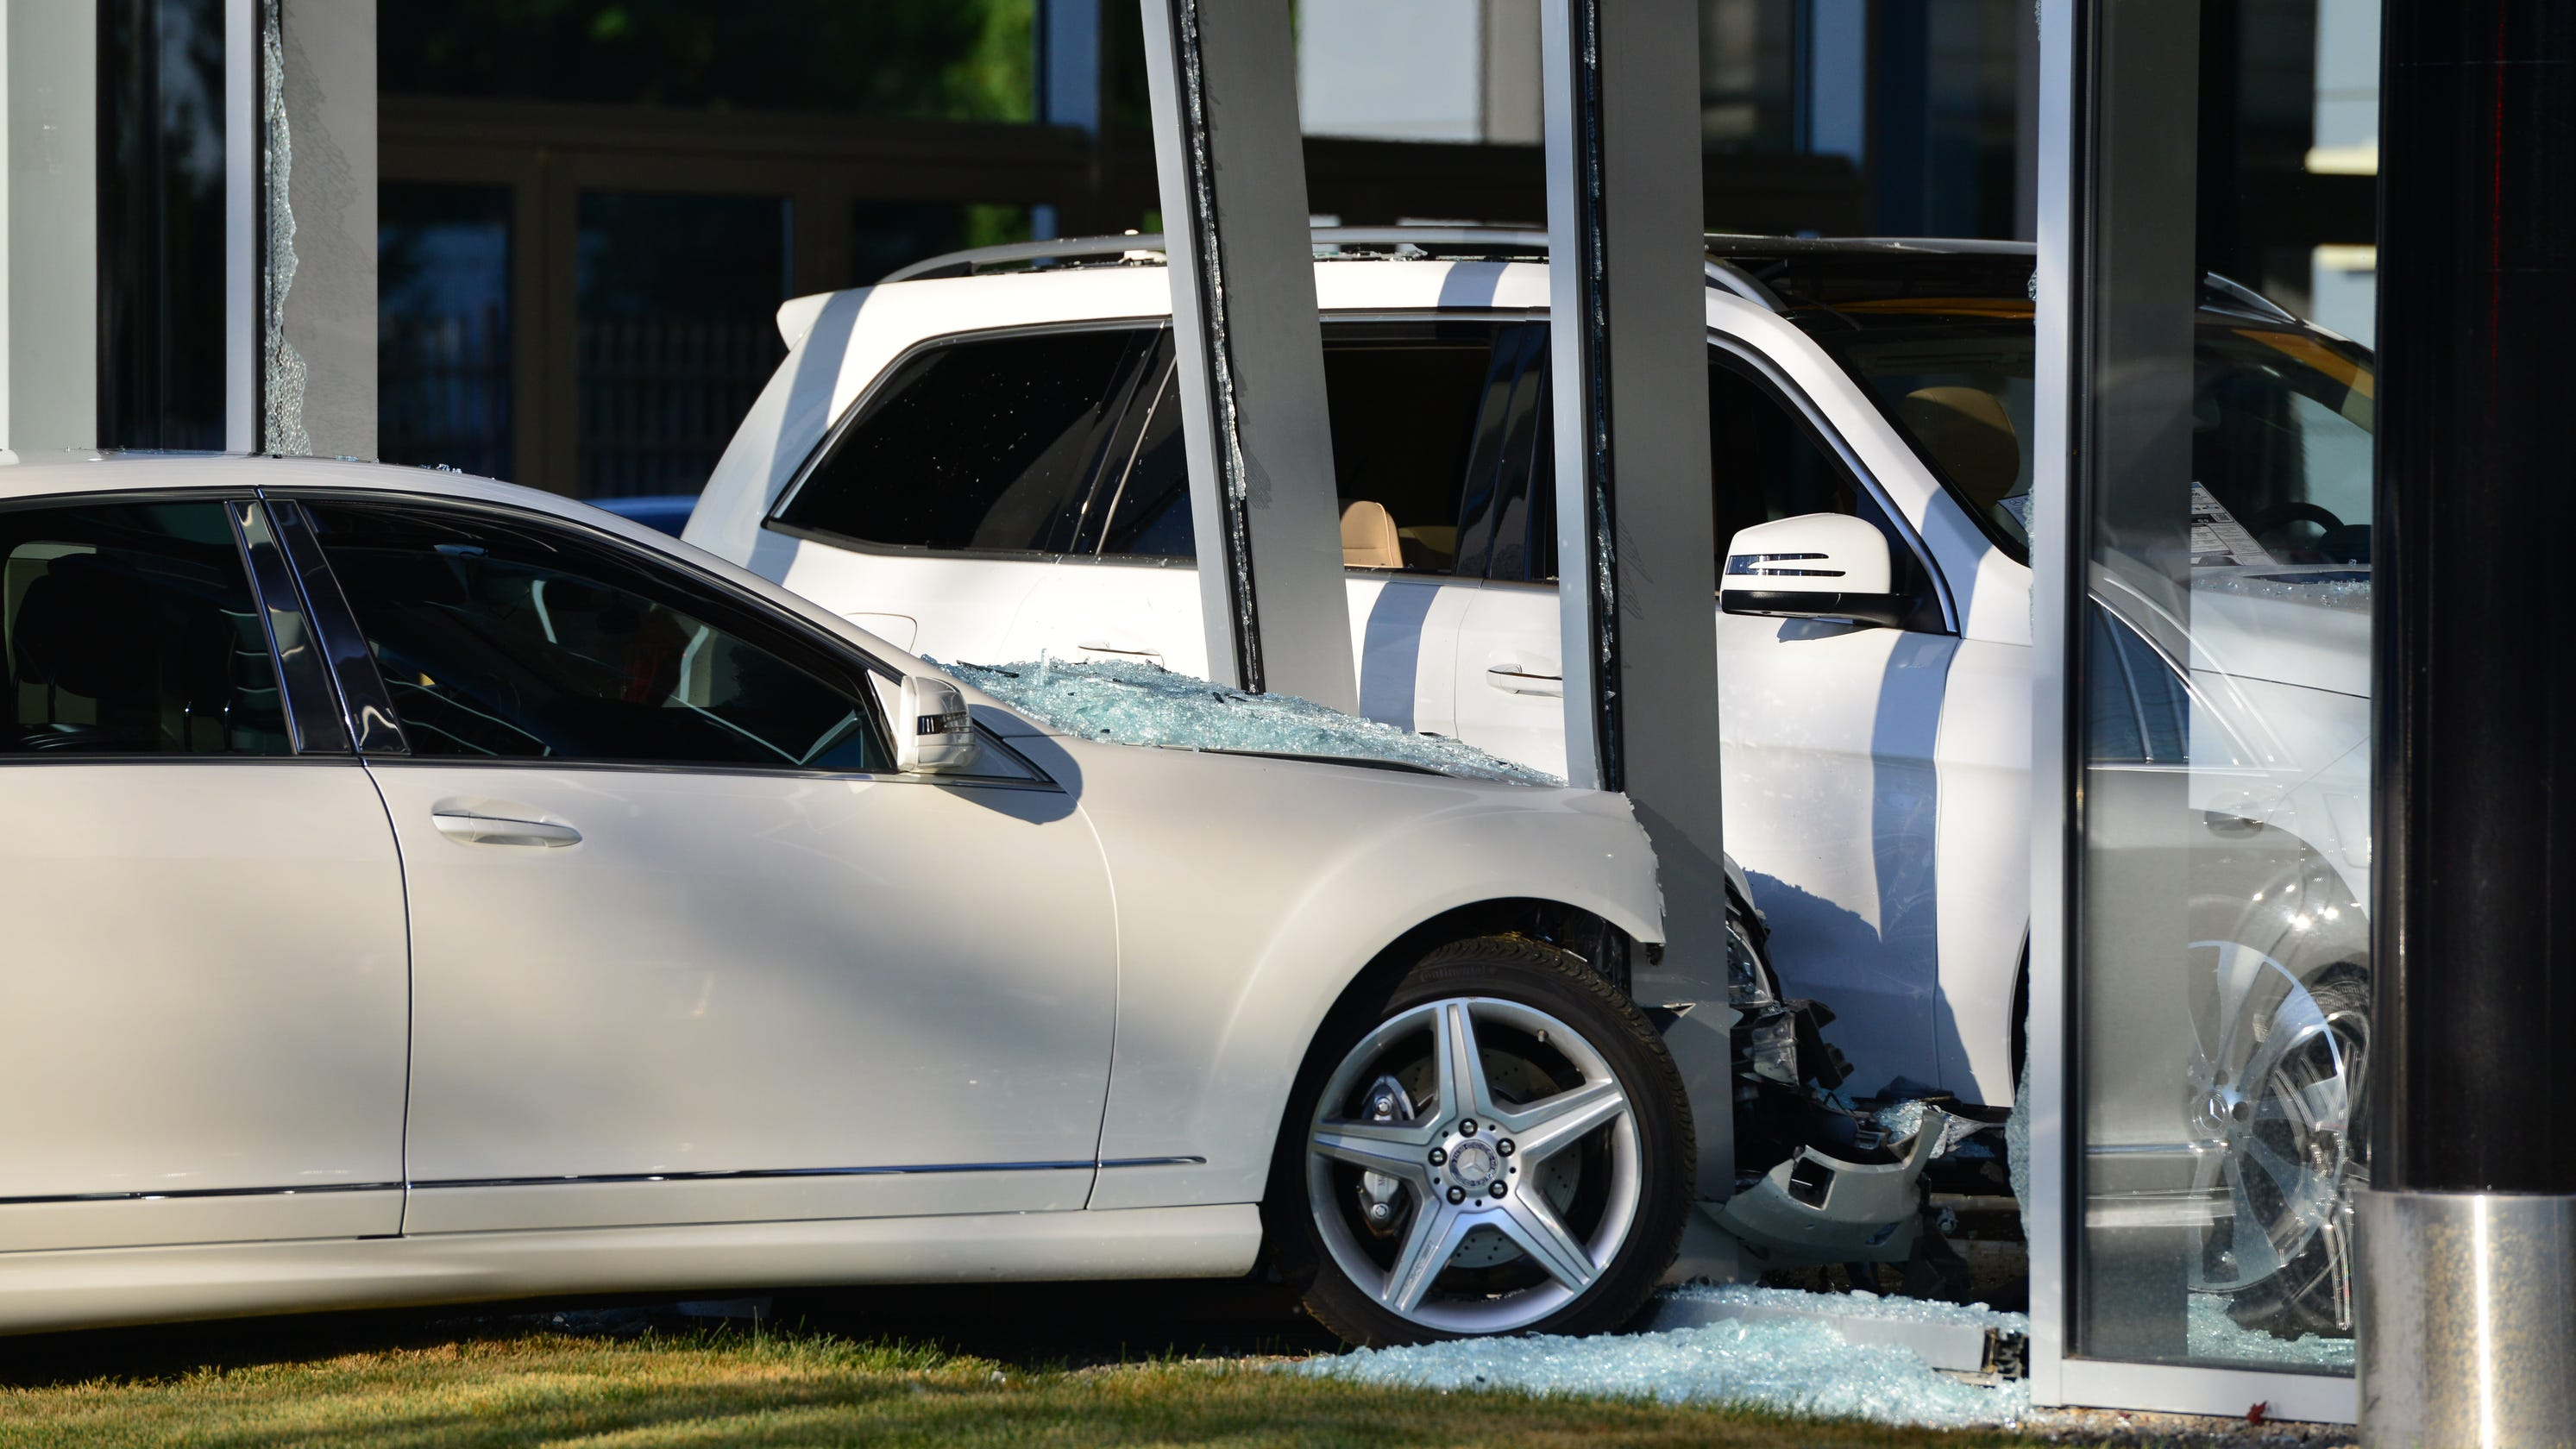 Mercedes Benz Dealers In Nj >> Woman Crashes Into Glass Wall Of Mercedes Benz Dealership In